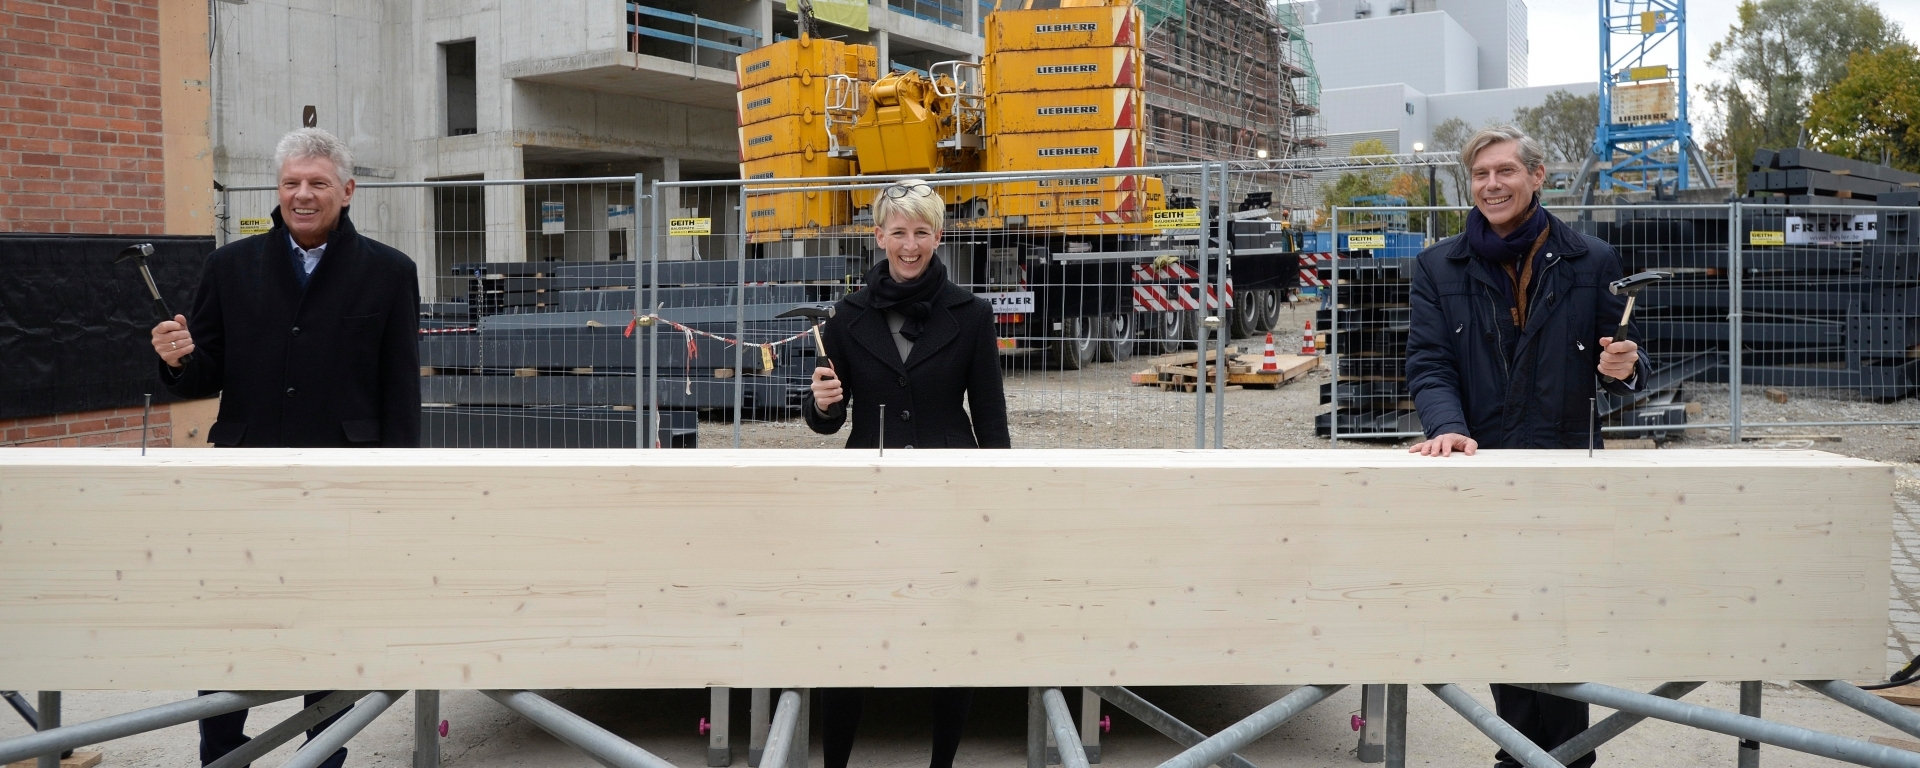 Topping-Out Ceremony at the New Cultural Powerhouse